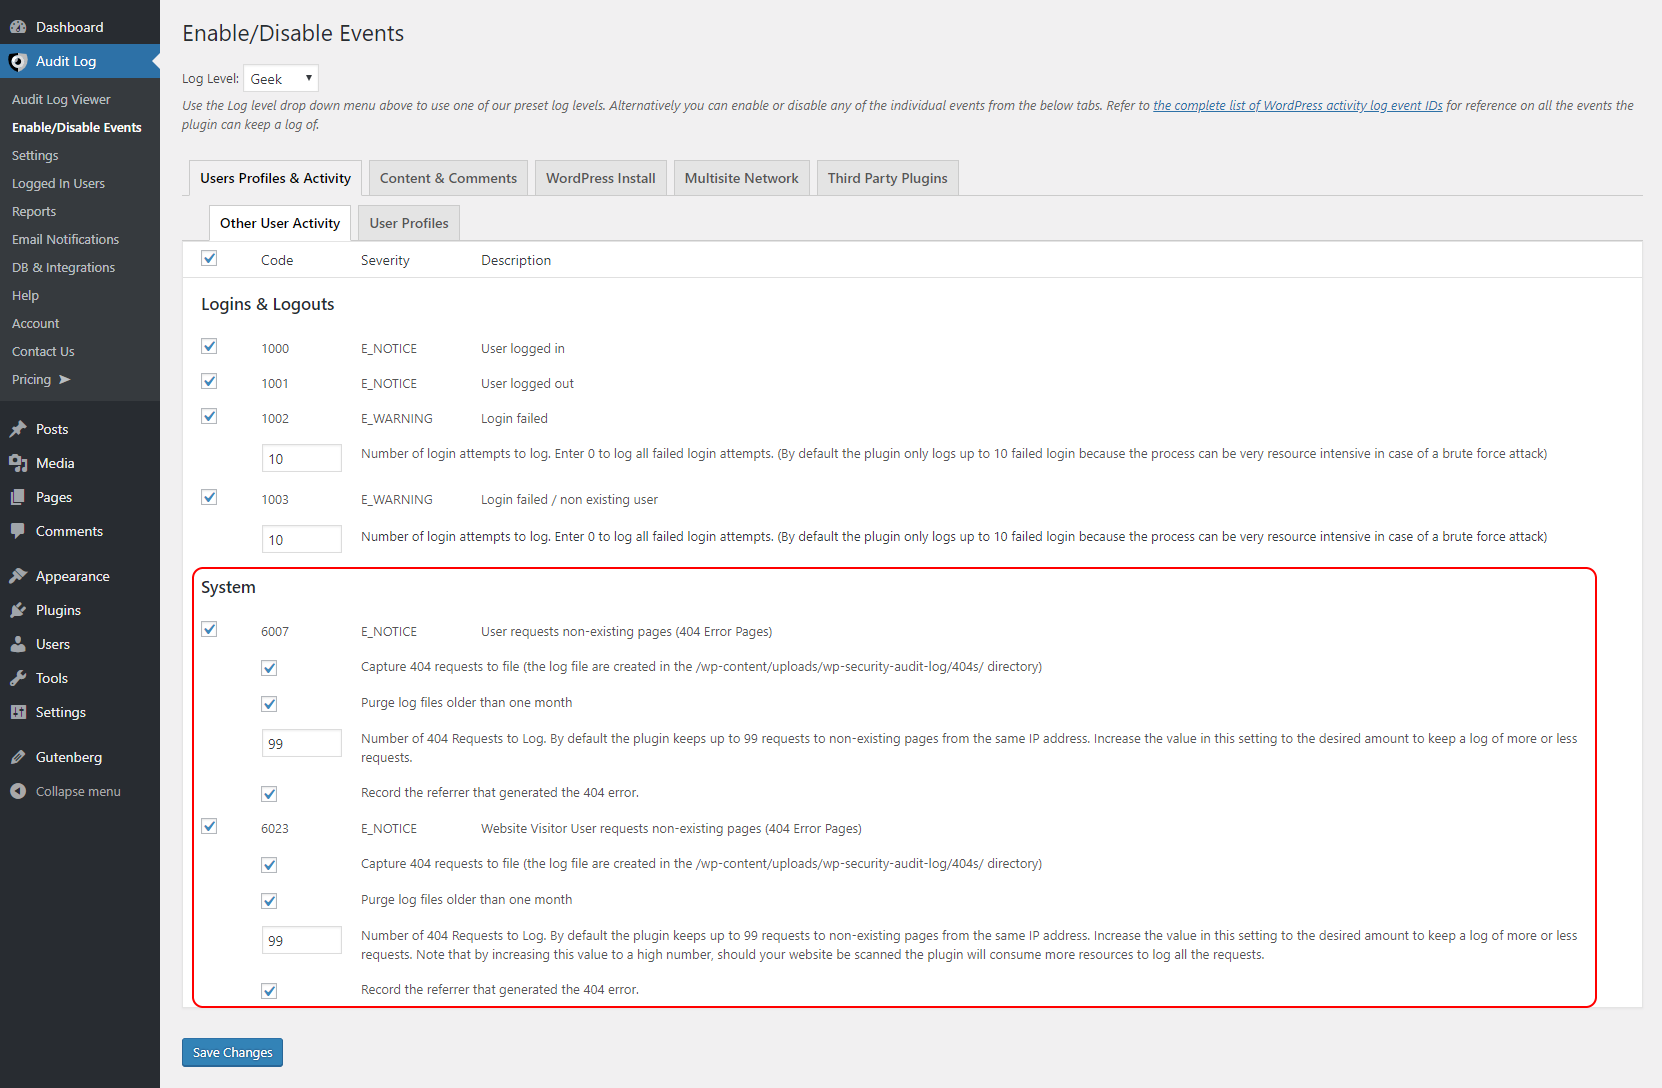 Configuring the logging of 404 Requests generated on your WordPress website